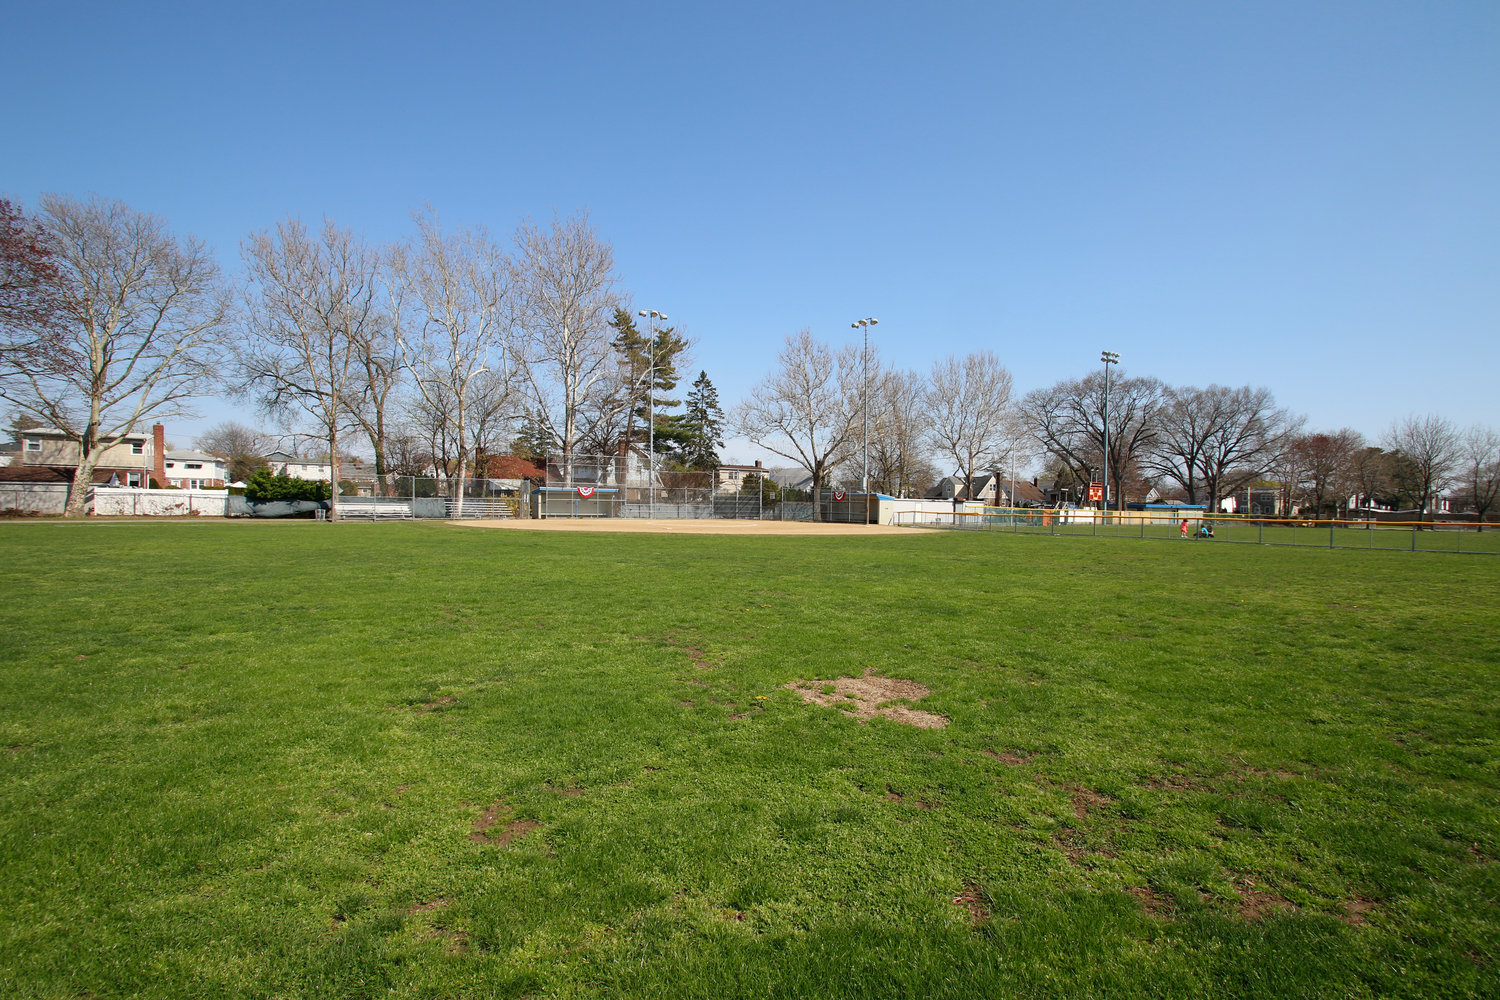 Franklin Square residents often say they are worried about the Rath Park field, which has long been in poor condition for Little League and football teams.